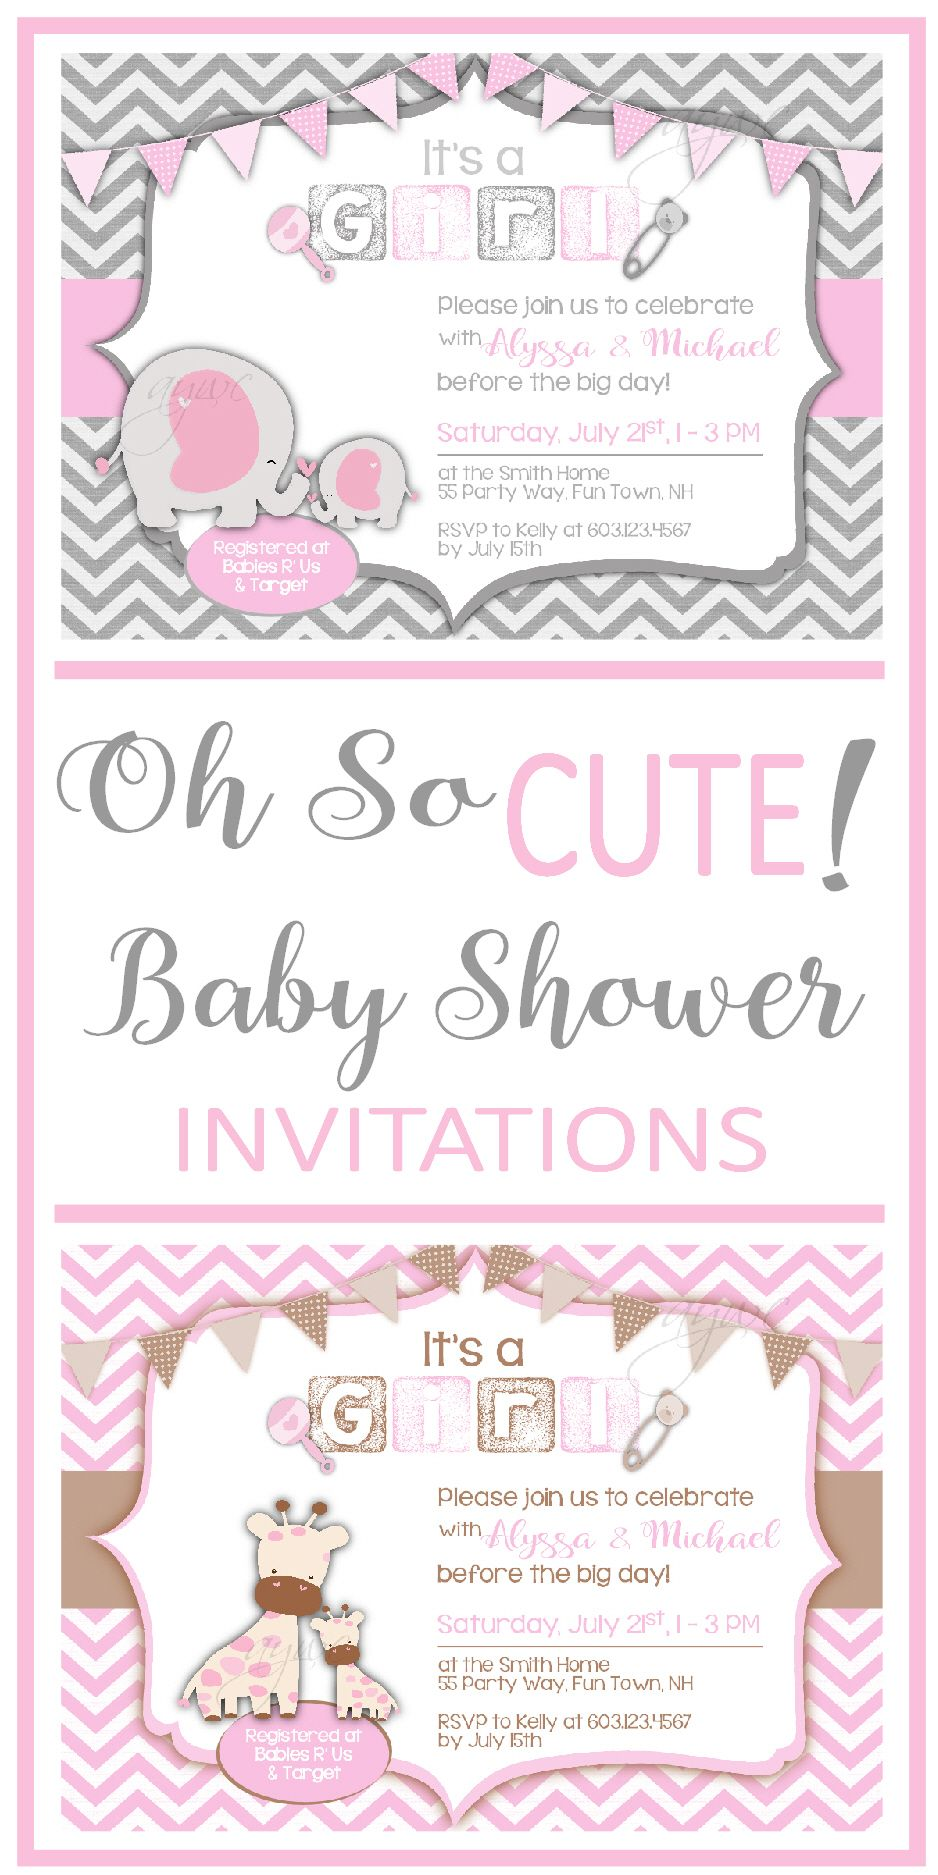 Baby Shower Invitations for Girls ~ Girl Baby Shower Invitations ...